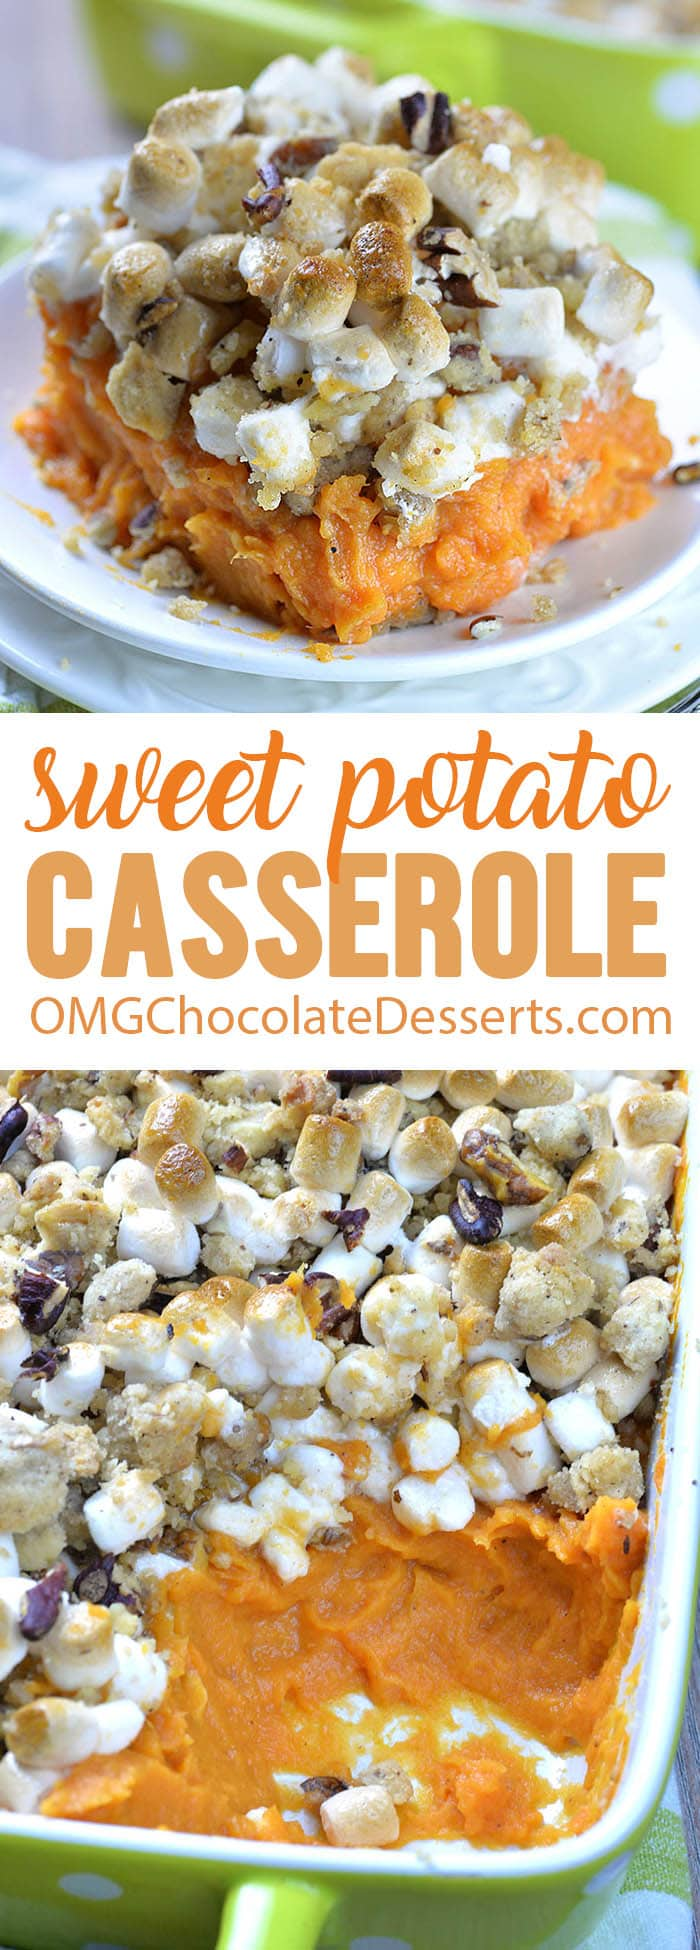 Delicious sweet potato casserole should be on your dinner table for holiday. This easy recipe with mashed sweet potato, marshmallows and brown sugar pecan streusel makes yummy side dish for Thanksgiving dinner.